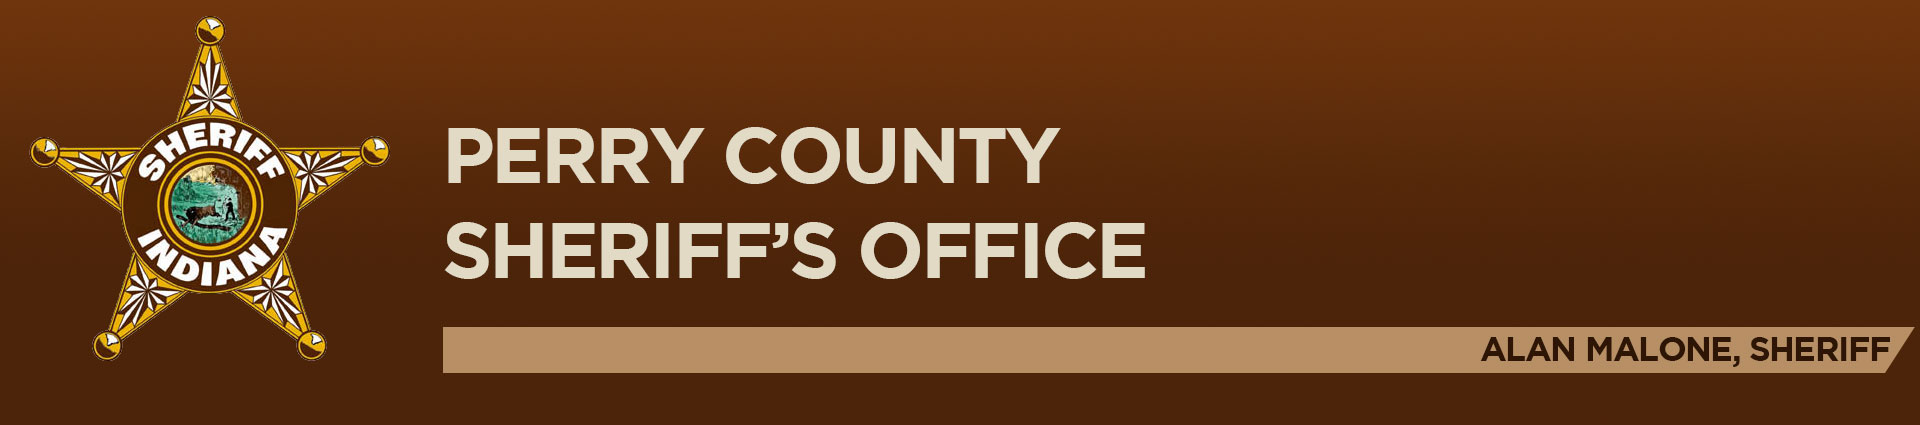 Perry County Indiana Sheriff's Office